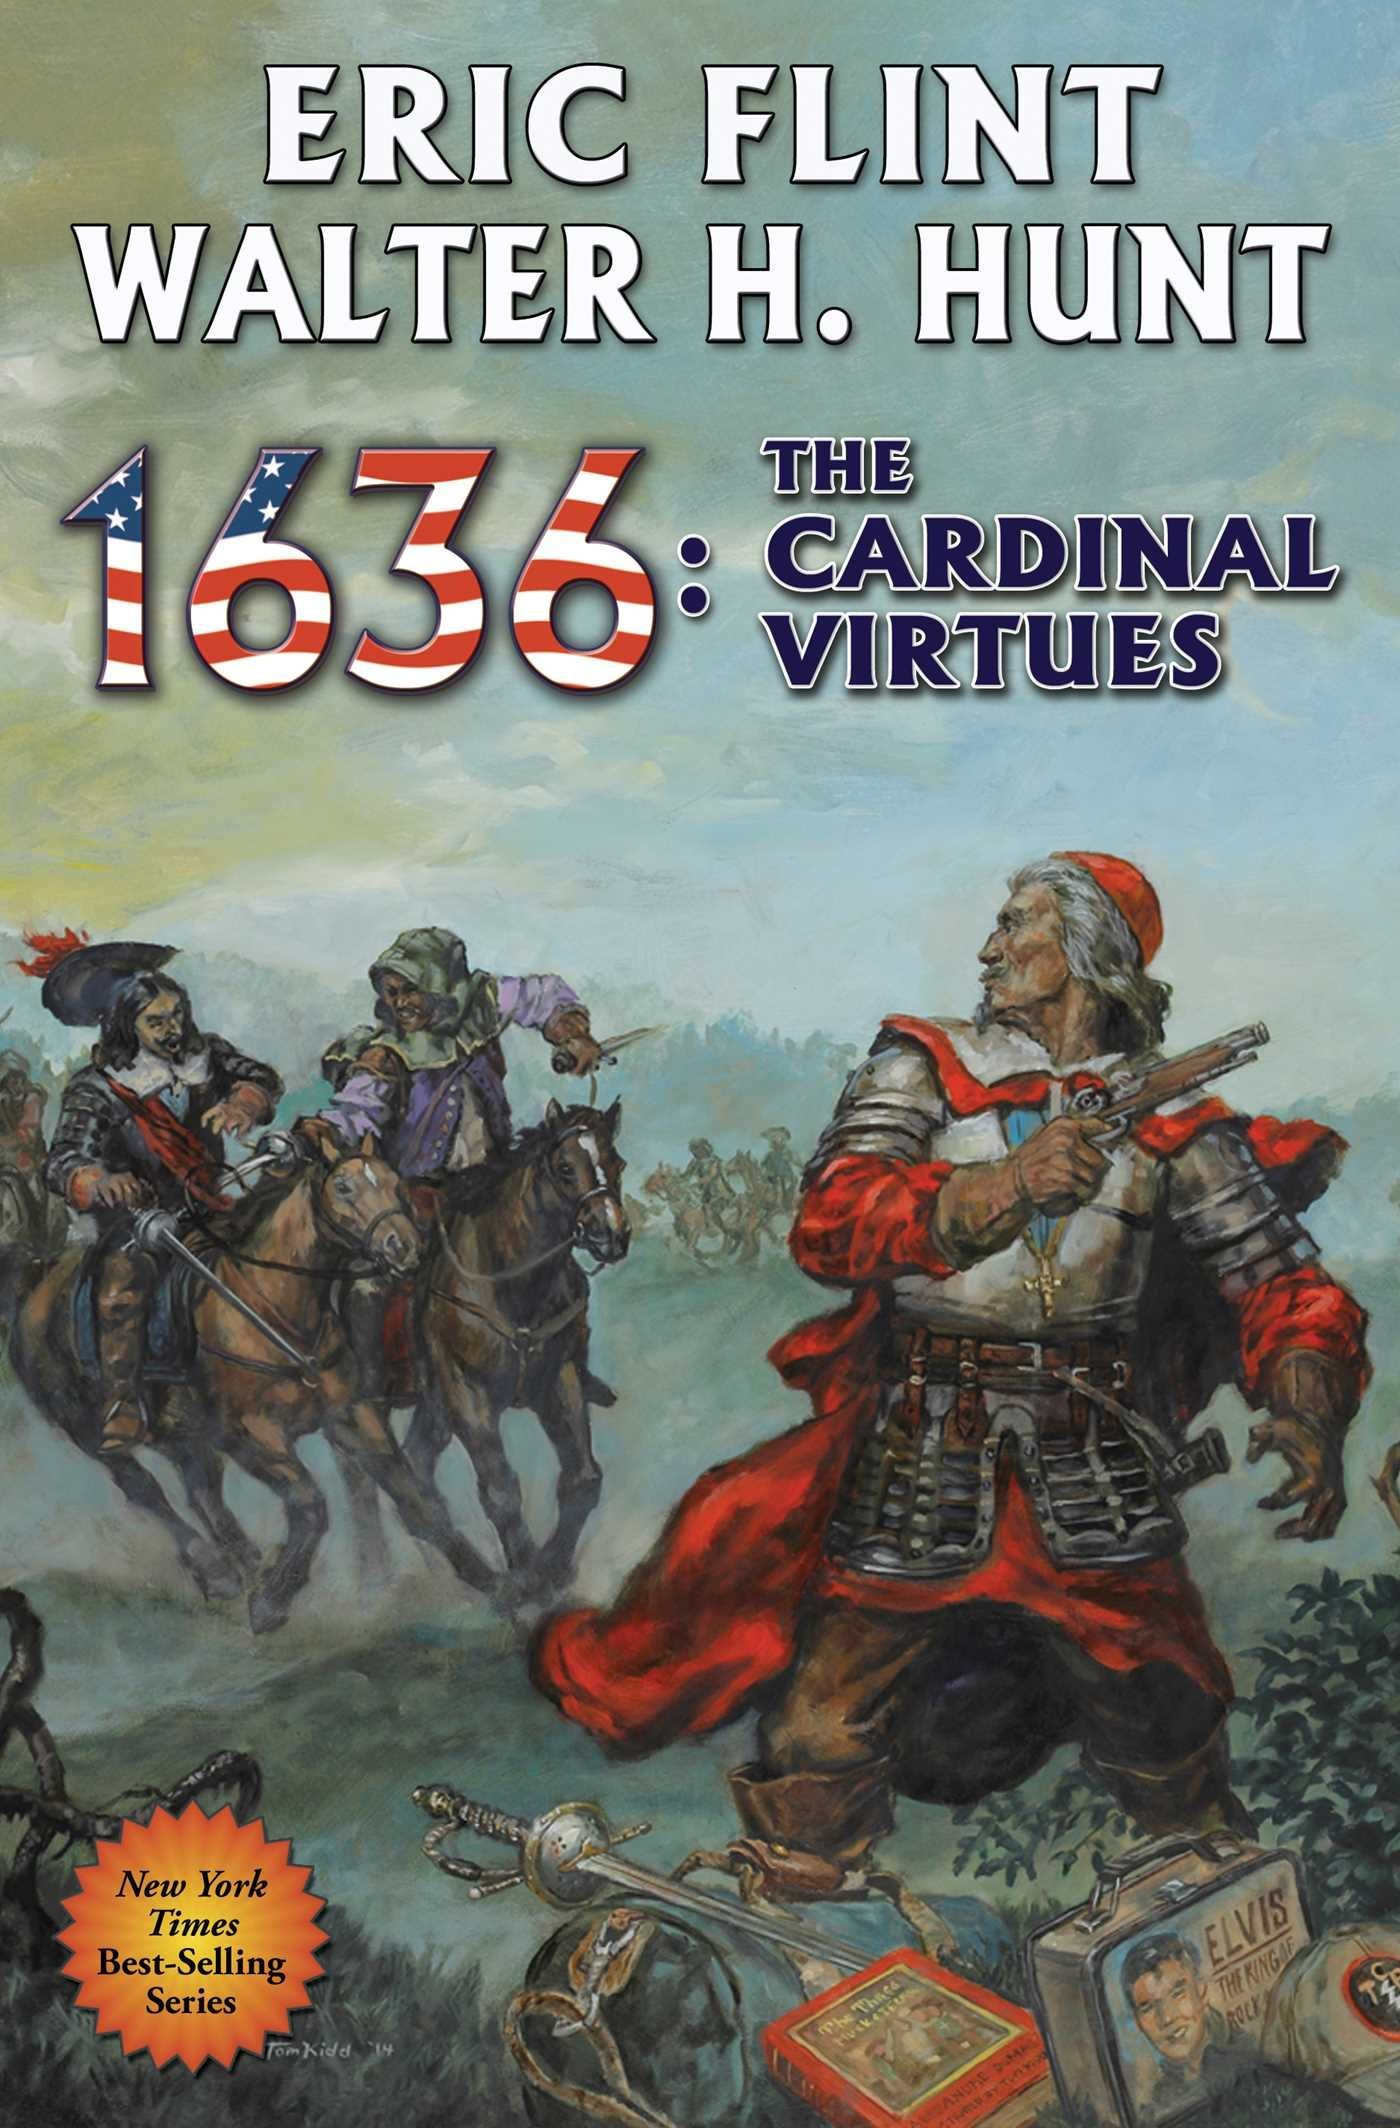 1636: The Cardinal Virtues (The Ring of Fire): Eric Flint, Walter H Hunt:  9781476781693: Amazon.com: Books